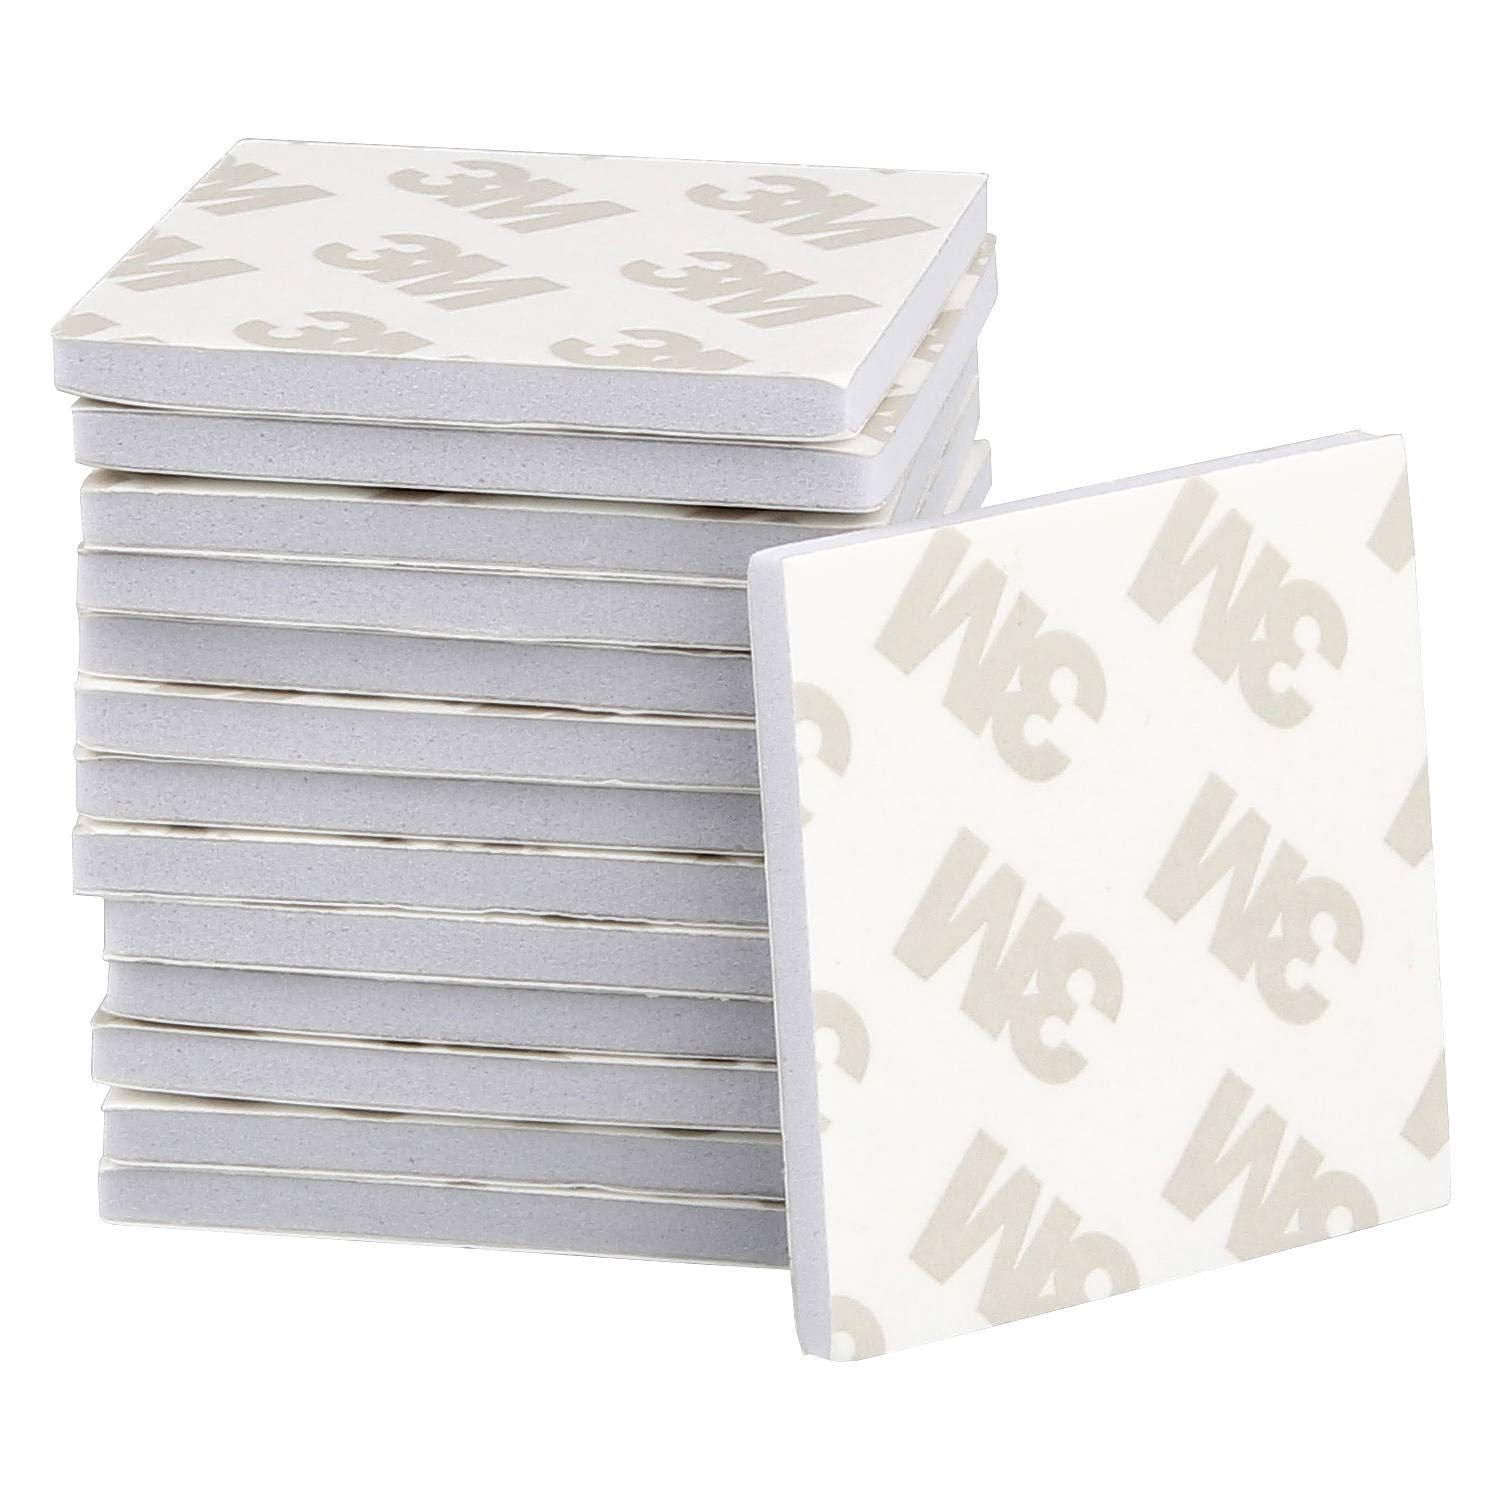 Square, White STARVAST 100Pcs 3M Double Sided Sticky Pads Super-Sticky Adhesive Foam Pads 3M Mounting Pads Tape